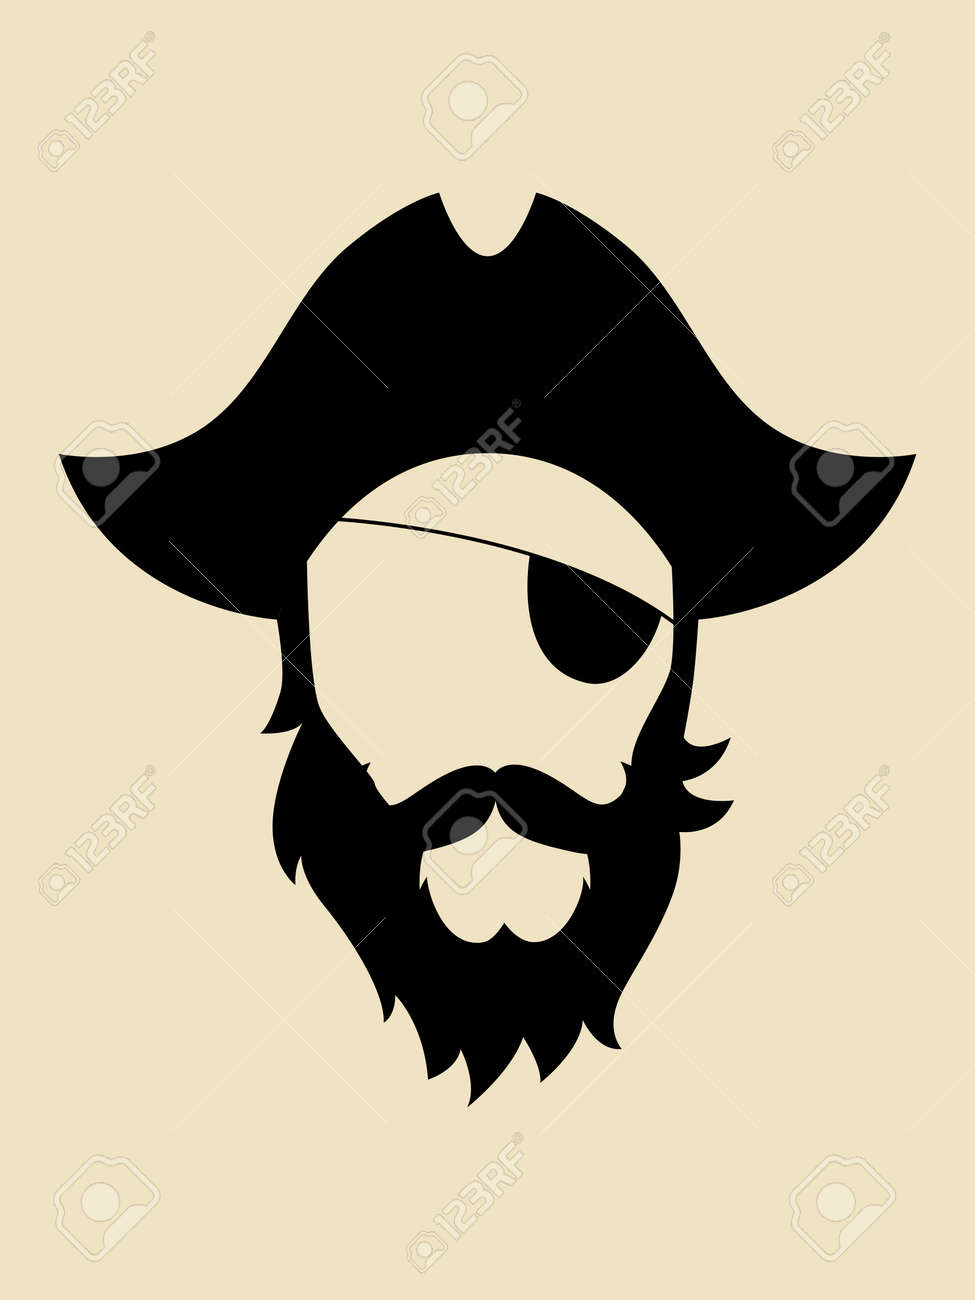 50e27574e8a Man with beards and mustache wearing a pirate hat symbol Stock Vector -  39783090